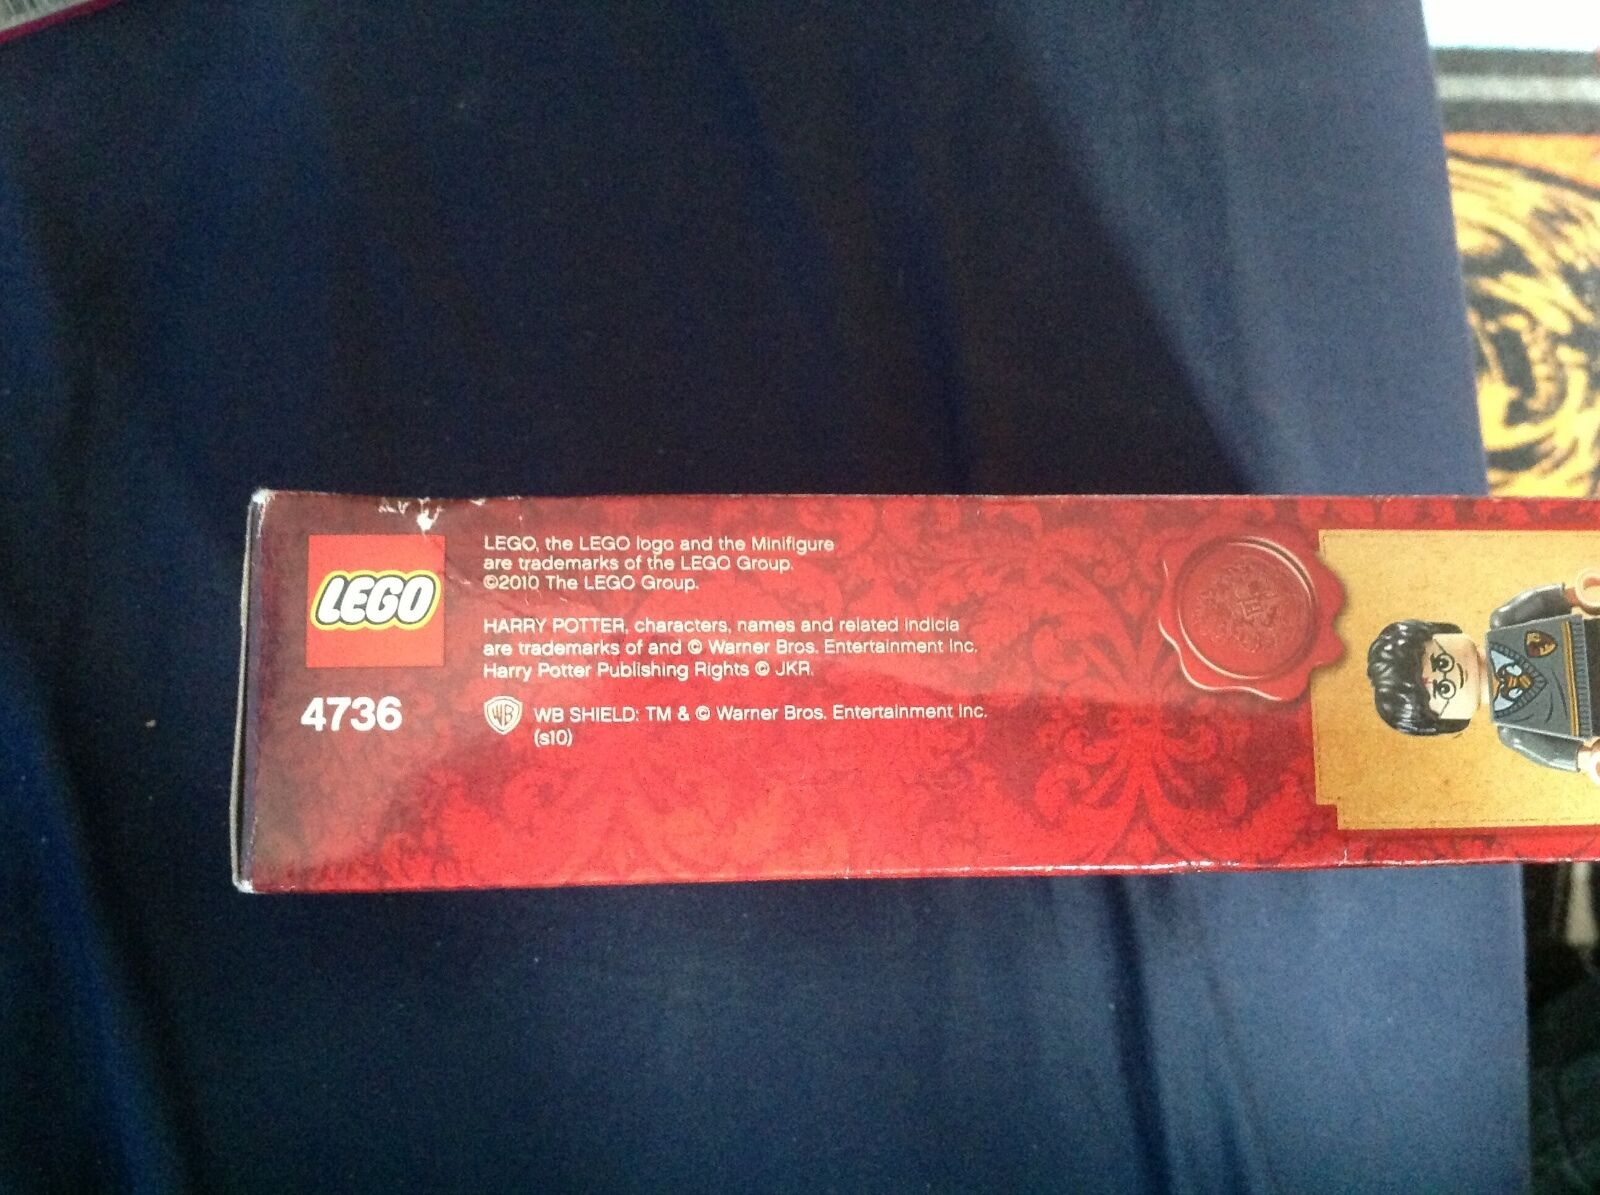 Lego 4736 harry potter freeing freeing freeing dobby new and sealed uk seller 1eb250